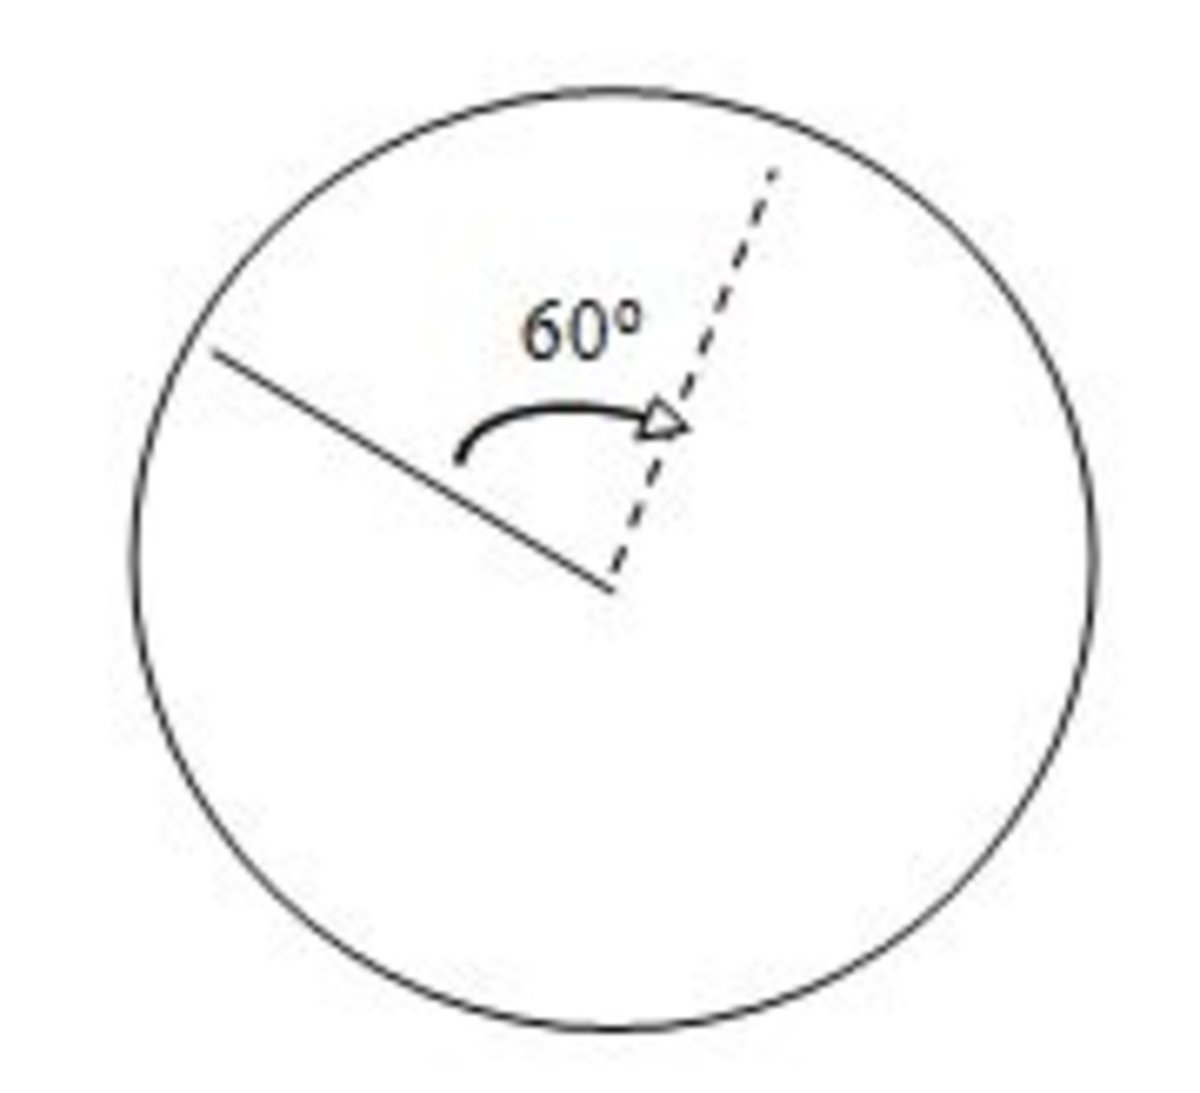 How to Find the Surface Area of Right-Angled and Isosceles